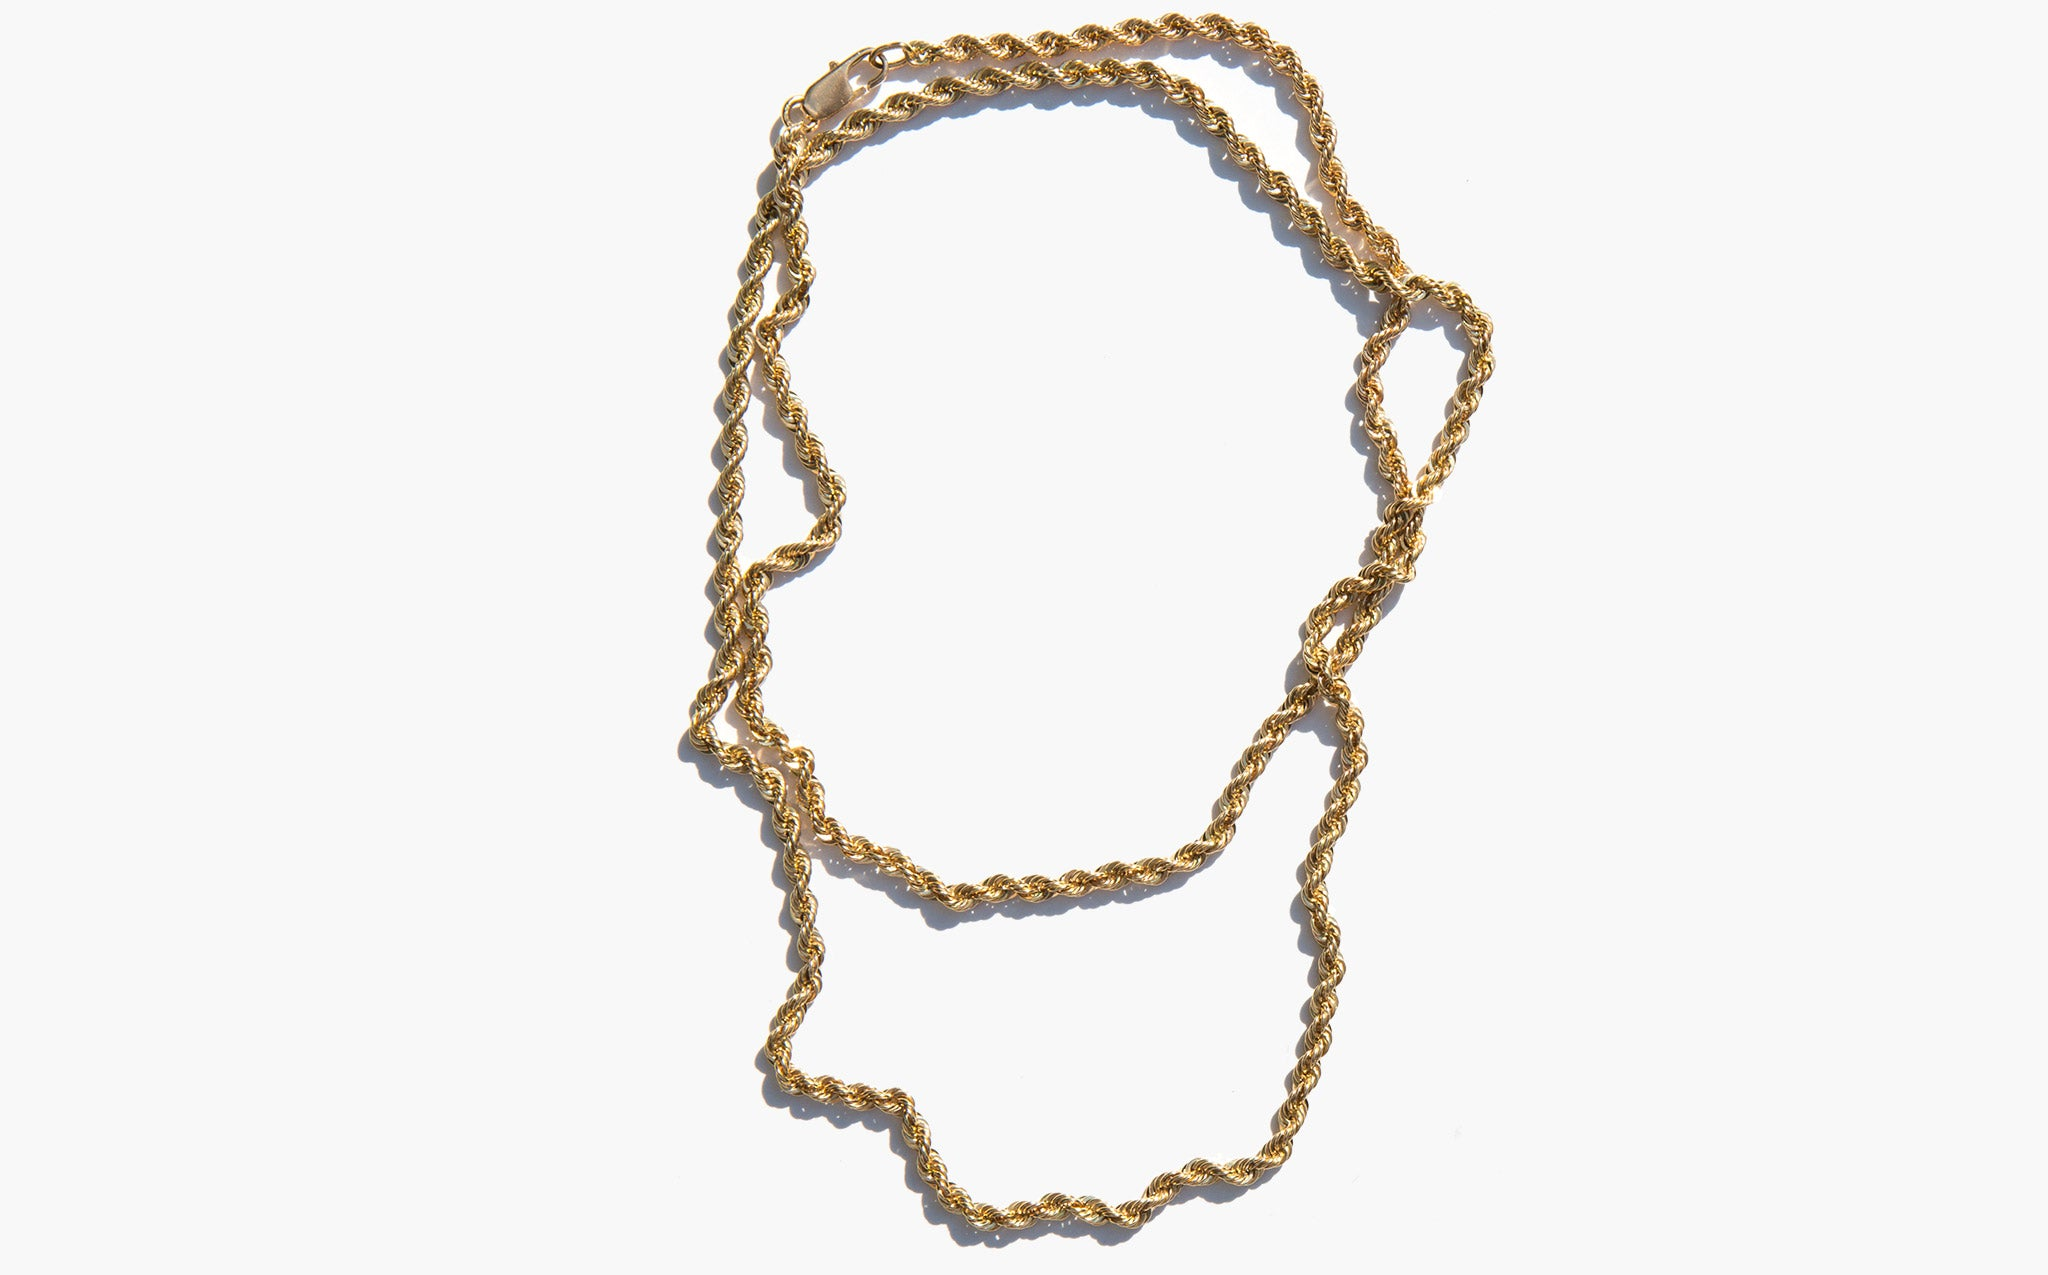 Langtry Chain